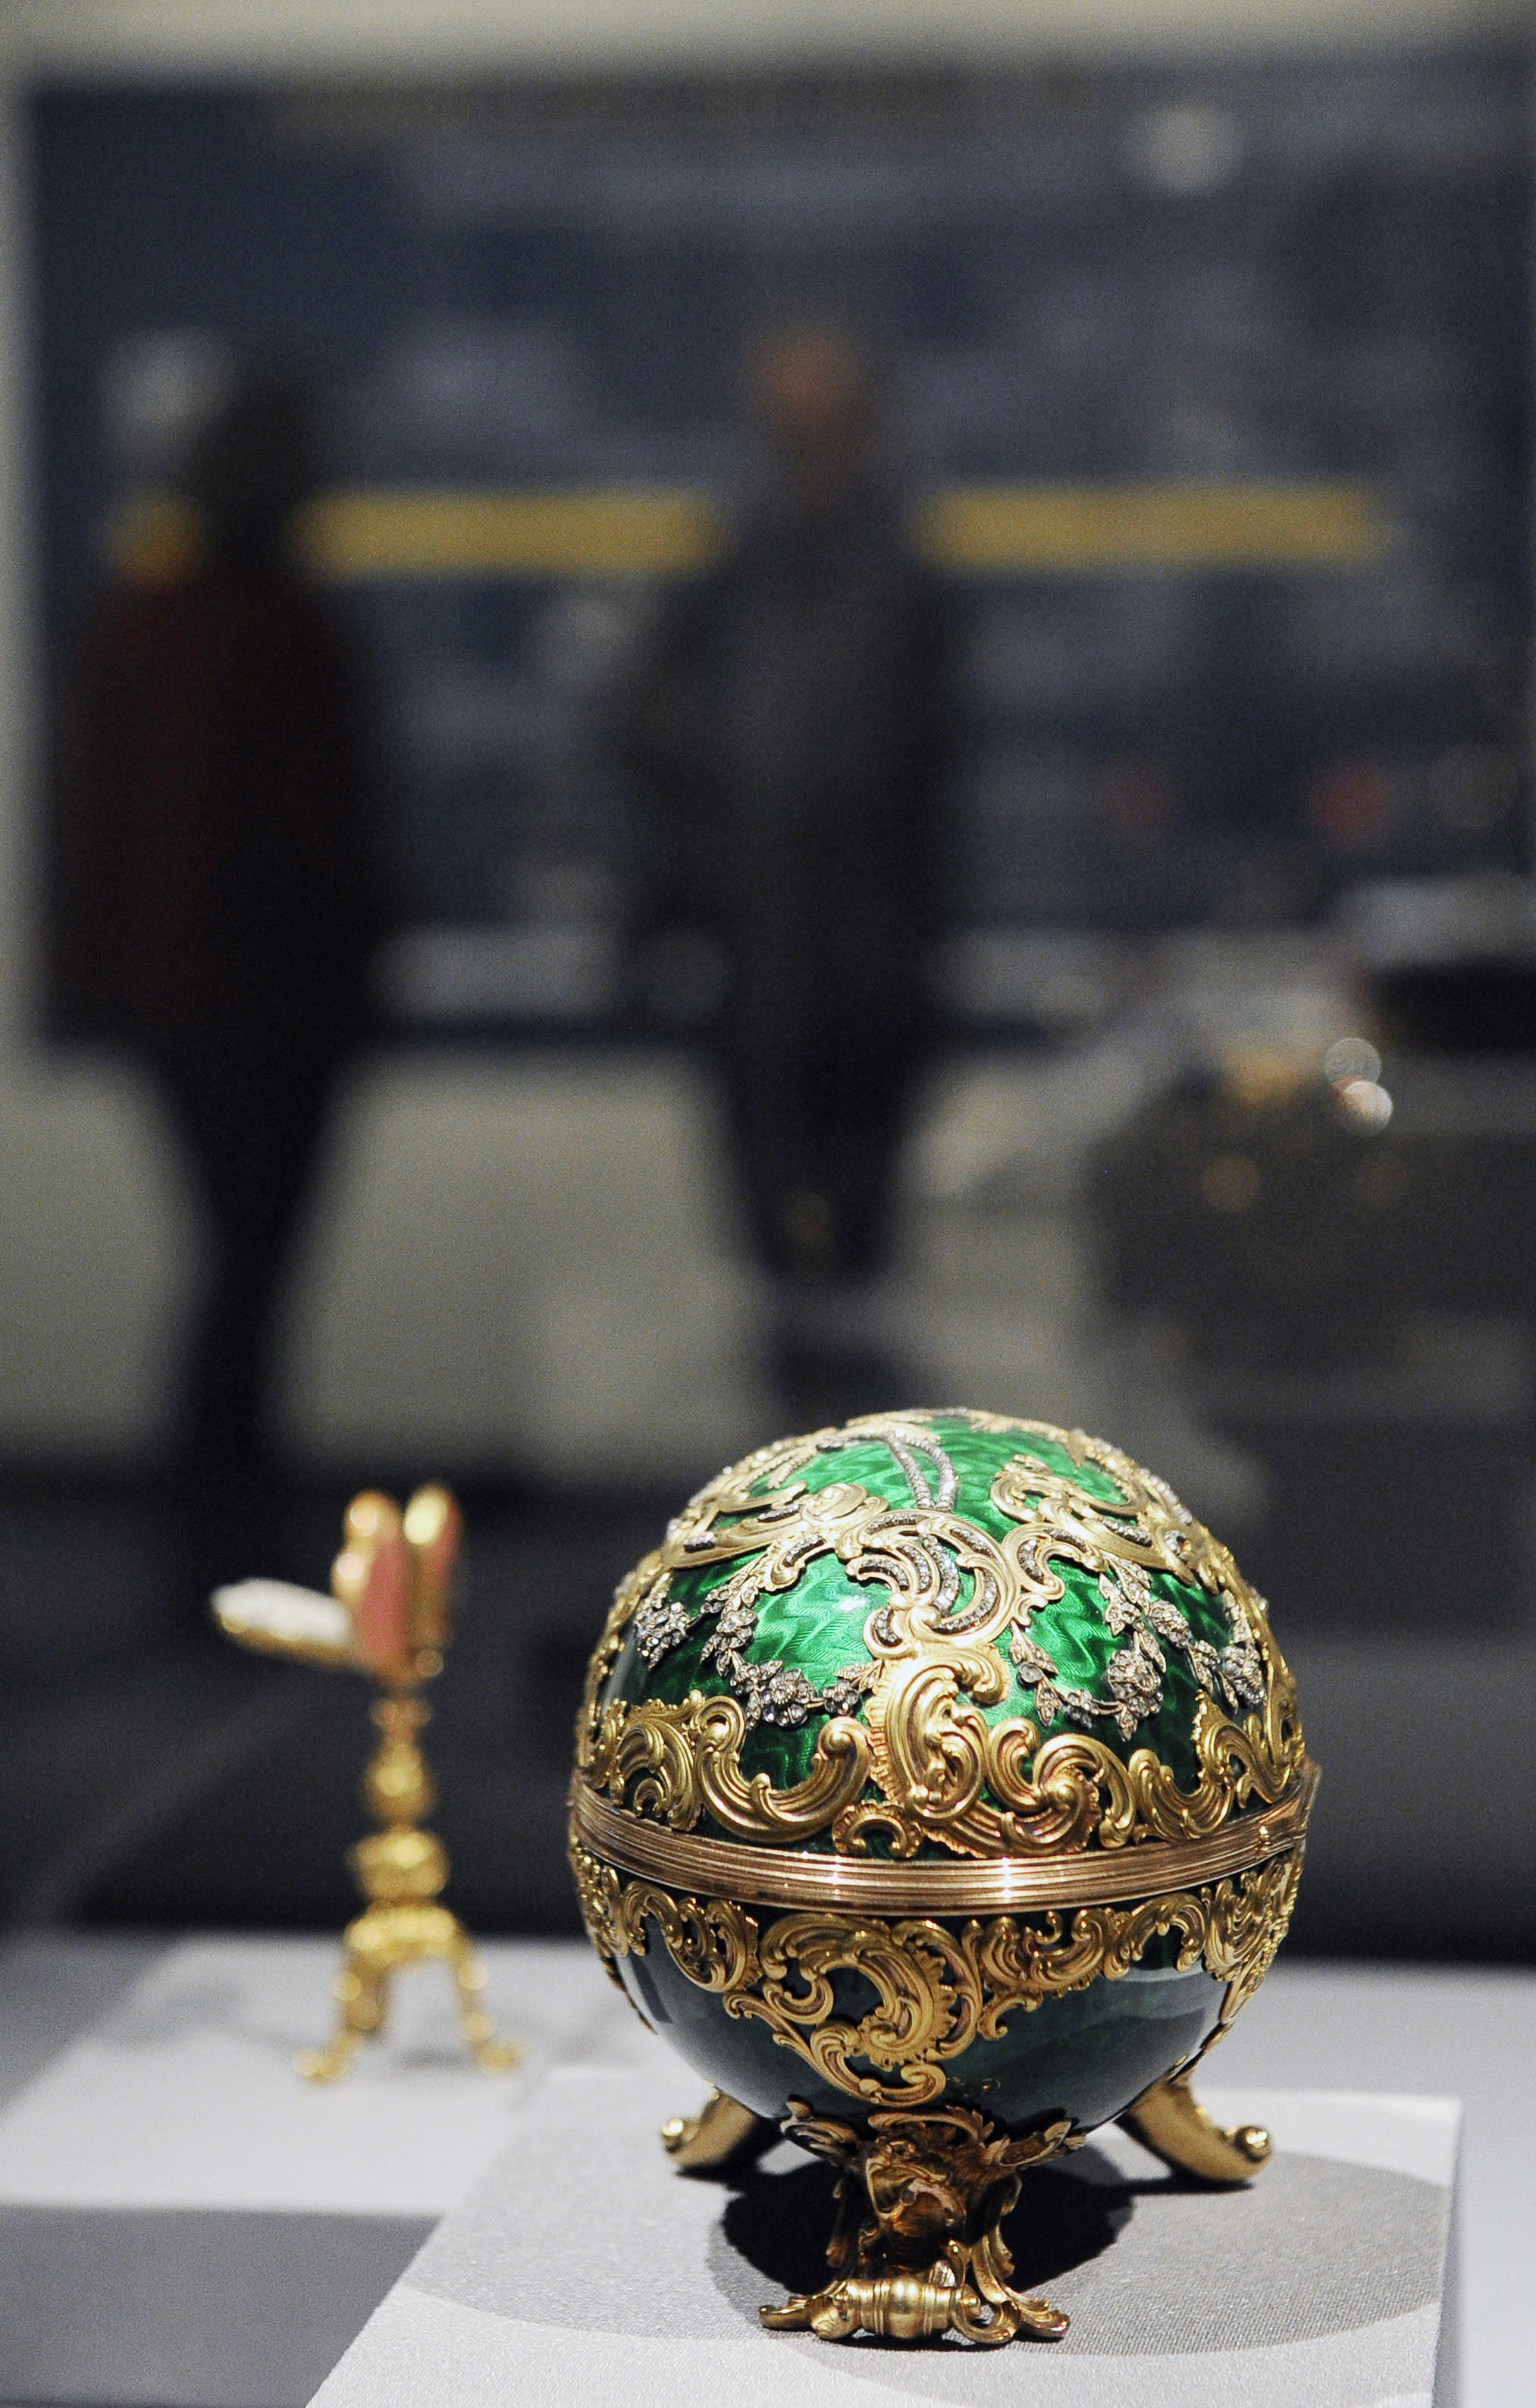 "The 1902 Kelch Rocaille Egg sits on display at the Houston Museum of Natural Science Tuesday, Feb. 19, 2013, in Houston as part of the largest private collection of items in the United States from the Russian artisan Peter Carl Faberge. The Kelch egg was created by Michael Perchin, one of Faberge's head workmasters. Featuring more than 350 objects, the exhibit ""Fabergé: A Brilliant Vision,"" runs through Dec. 31, 2013 at the Houston Museum of Natural Science. (AP Photo/Pat Sullivan)"